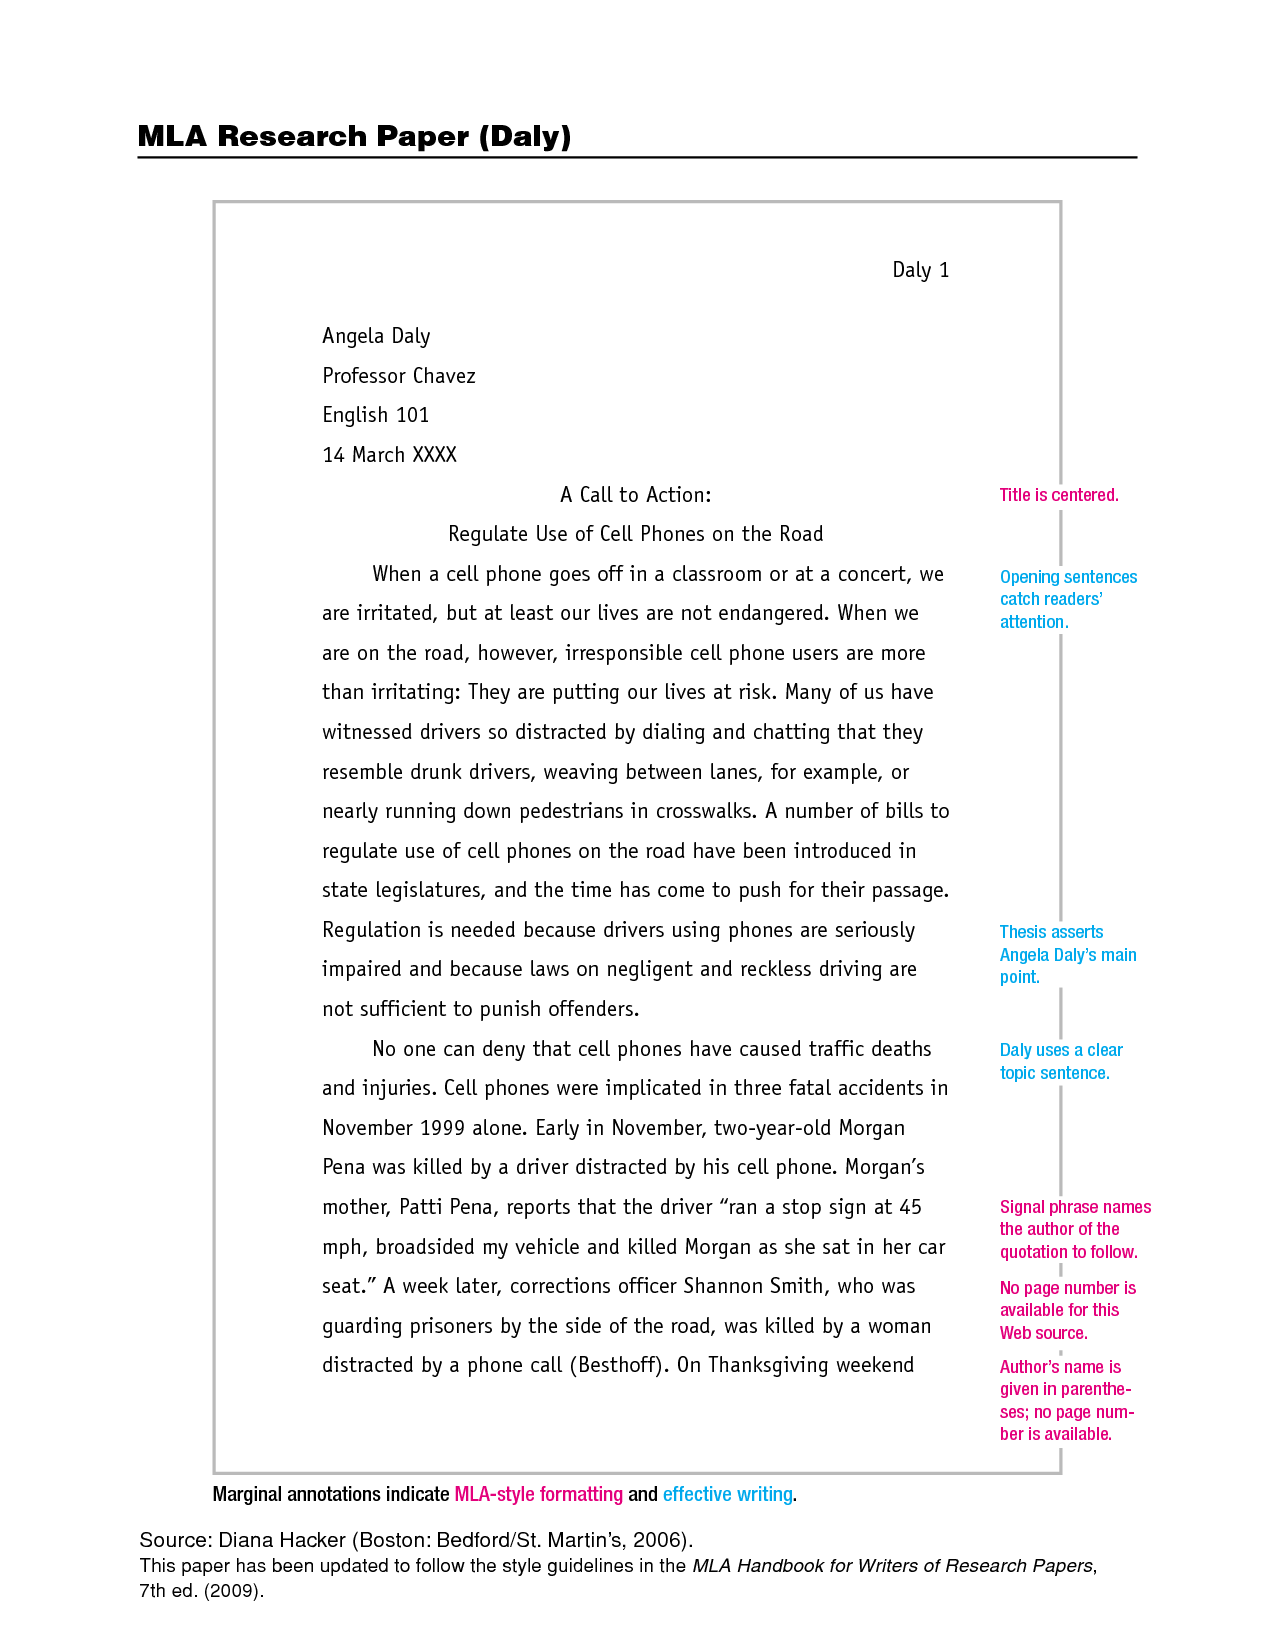 009 Research Paper Format Of Astounding A Introduction Example Using Apa Style Mla With Title Page Full